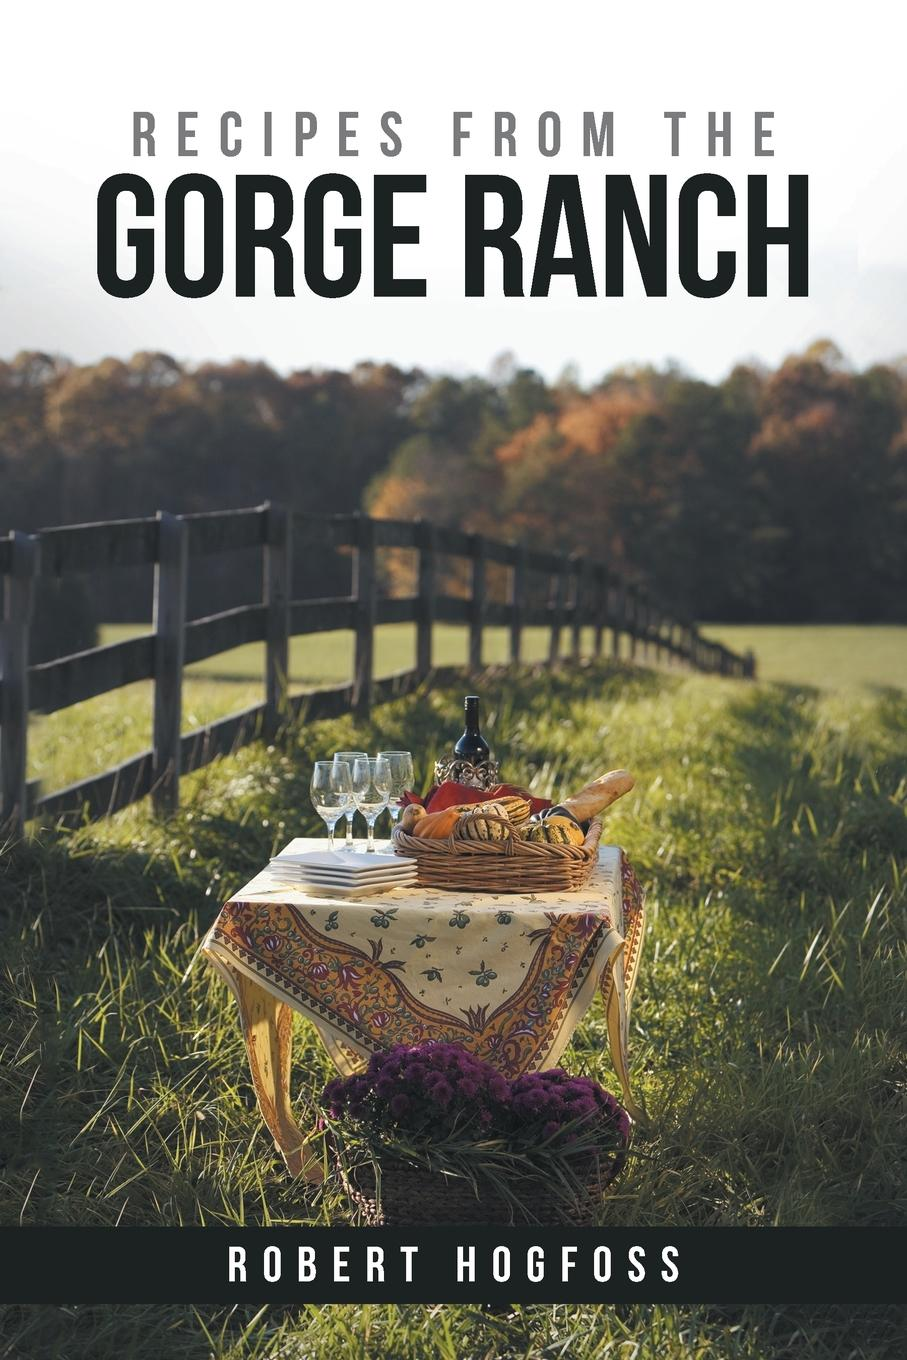 Robert Hogfoss Recipes from the Gorge Ranch journal jungle publishing my recipe book 100 recipe pages conversion tables quotes and more make your own cookbook using this blank recipe book 8 x 10 inches pink purple and orange